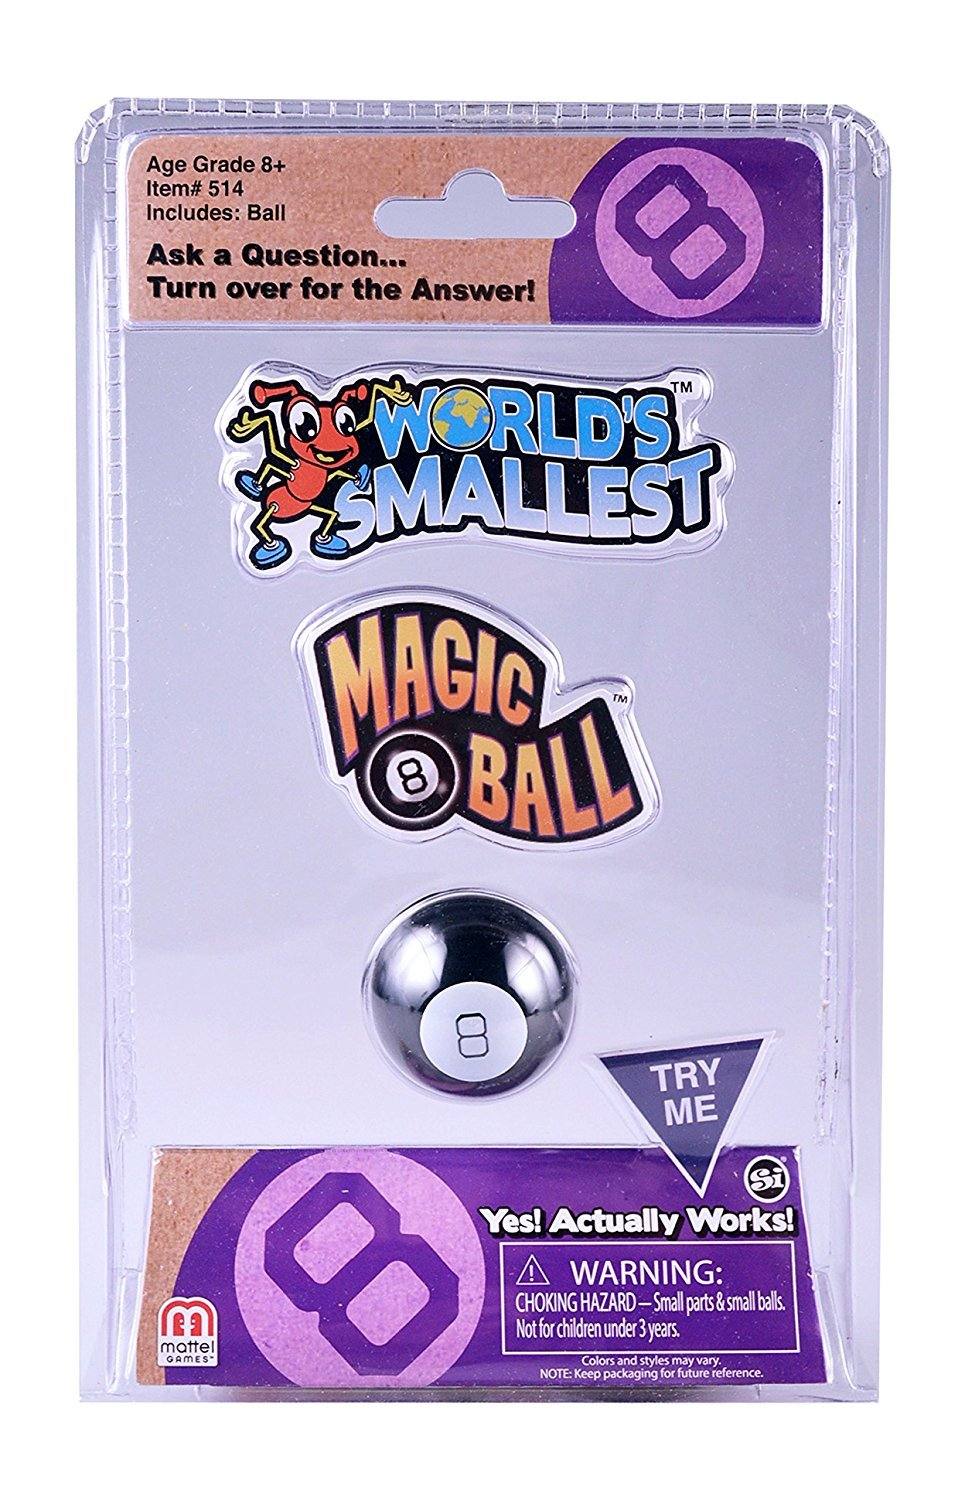 Worlds Smallest - Magic 8 Ball image